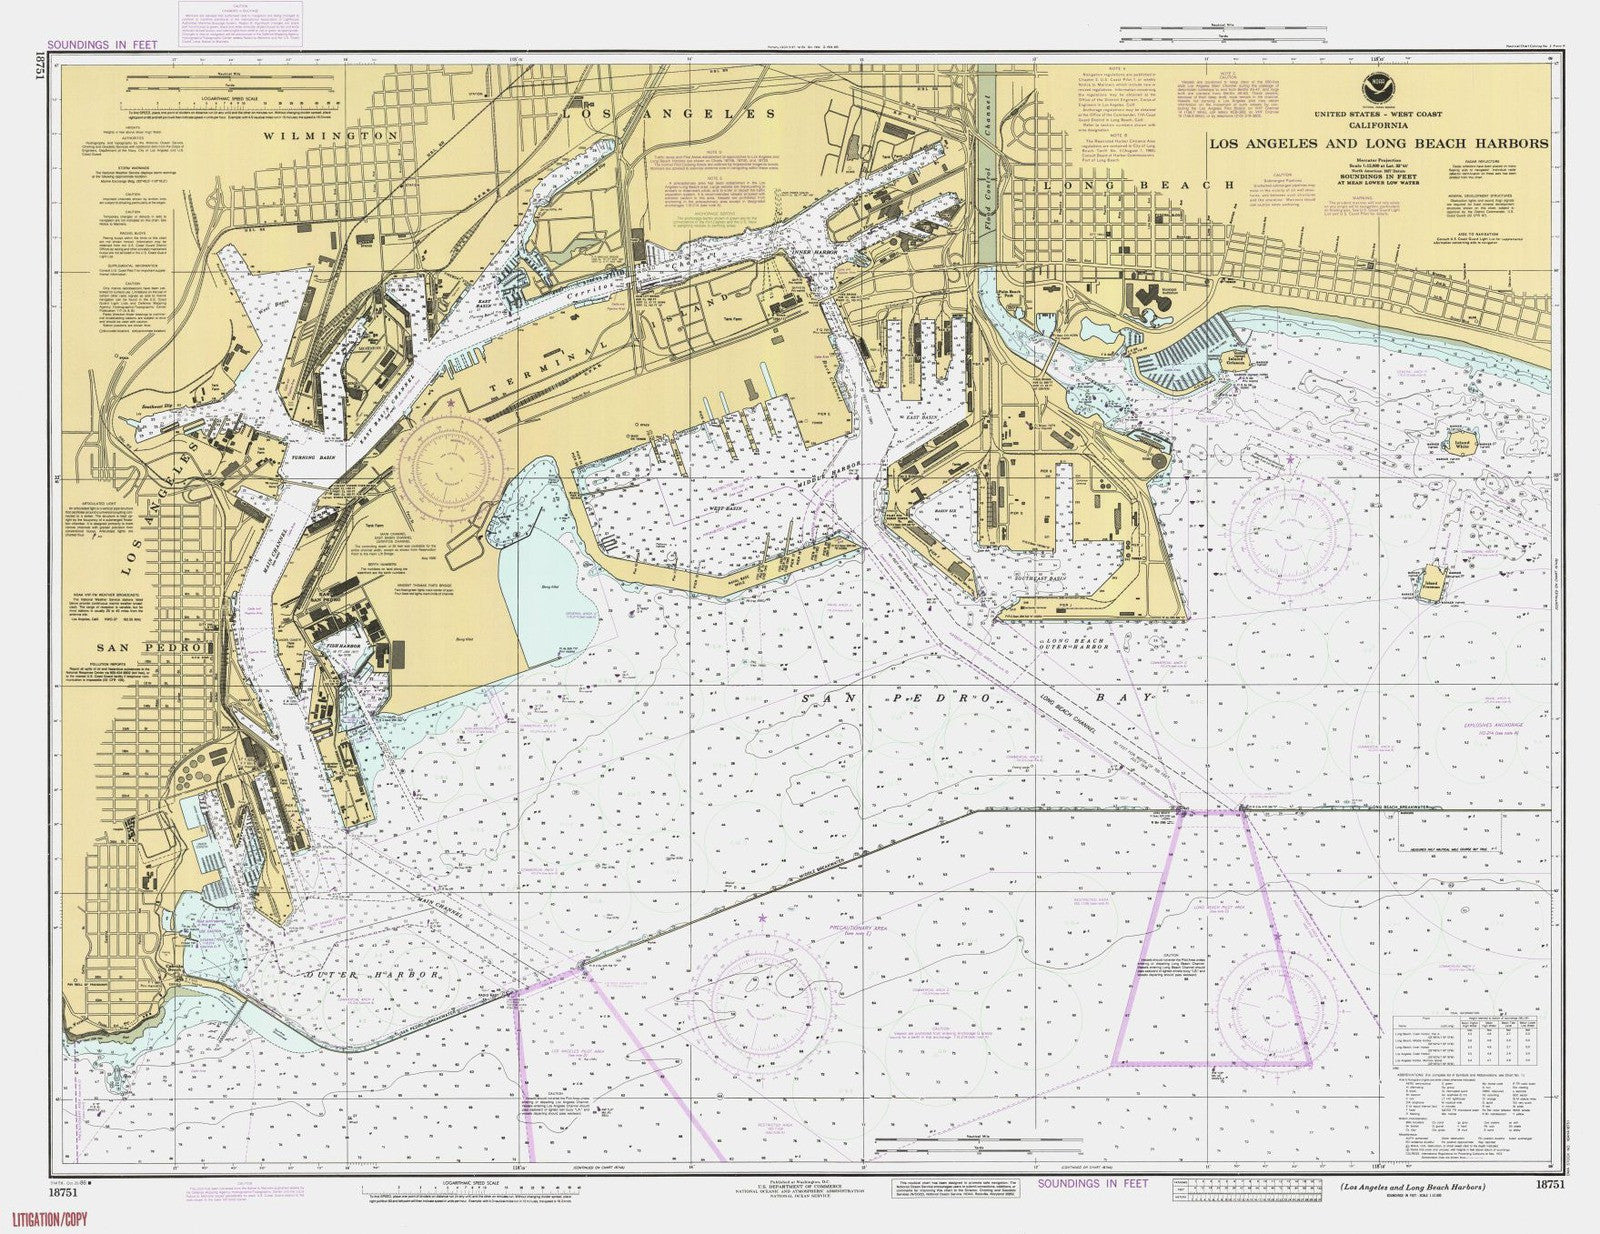 Print Of Los Angeles And Long Beach Harbors Poster On Vintage - Vintage los angeles map poster